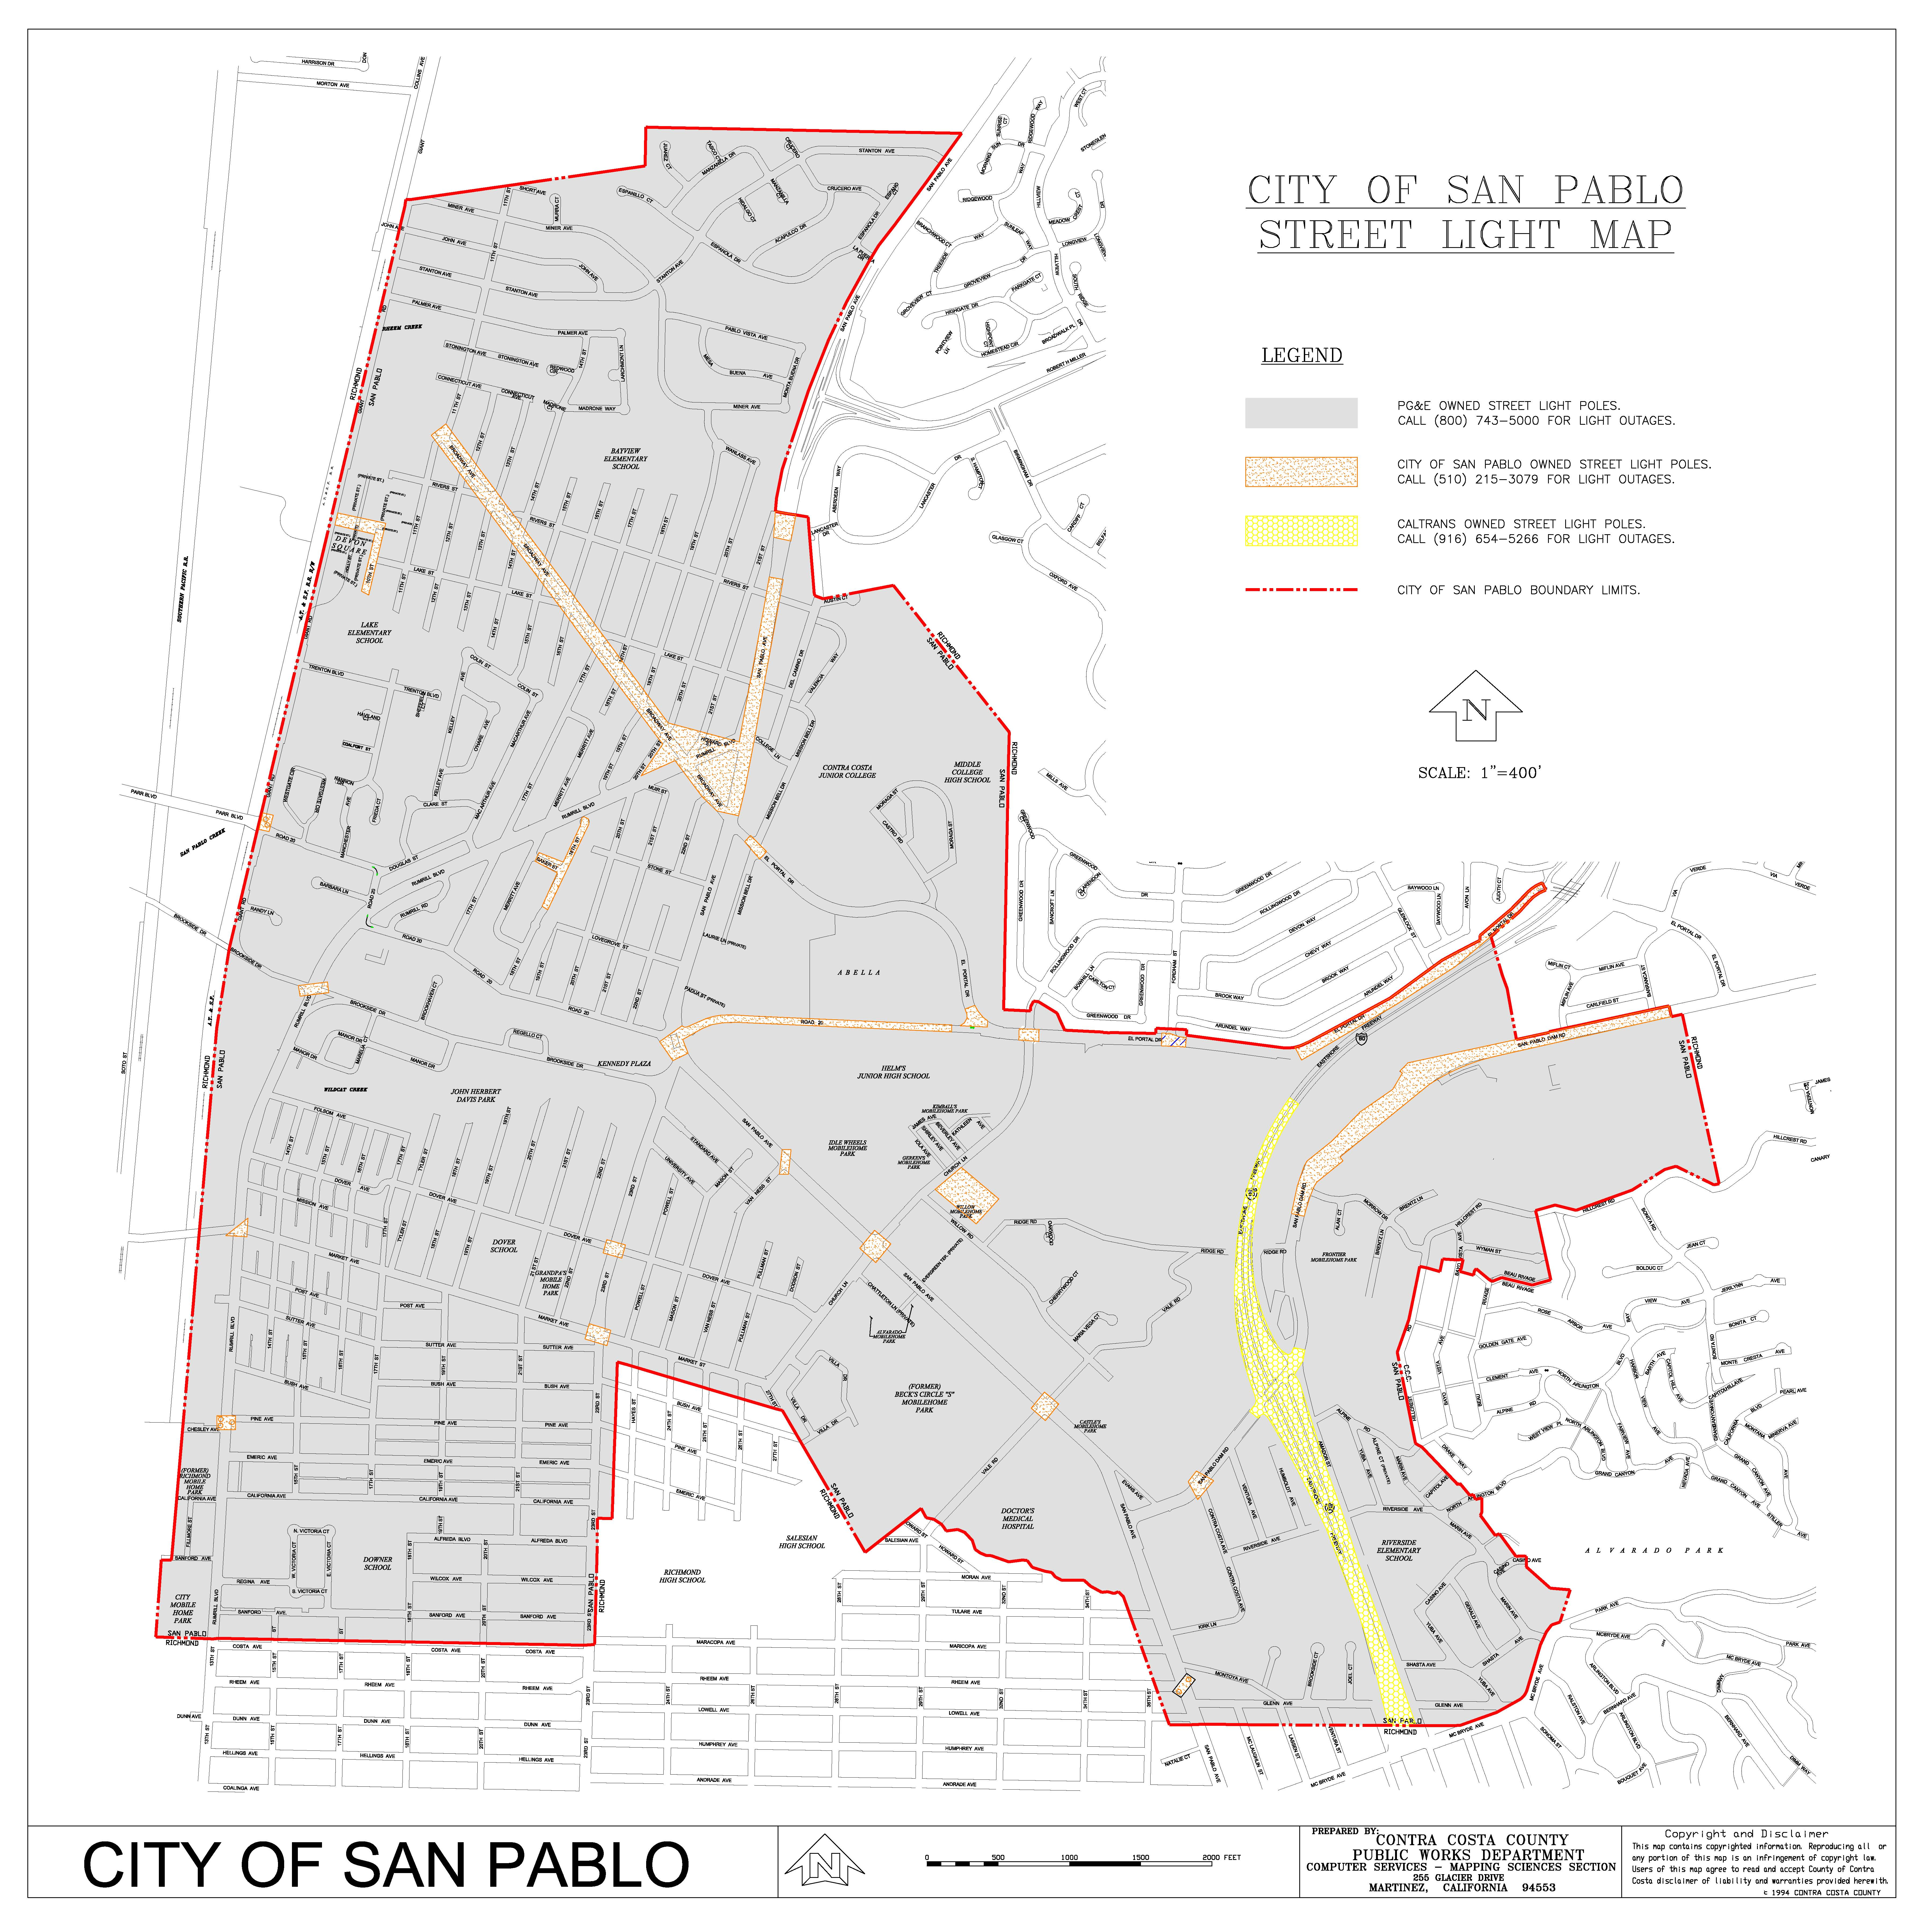 City of San Pablo Street Light Map